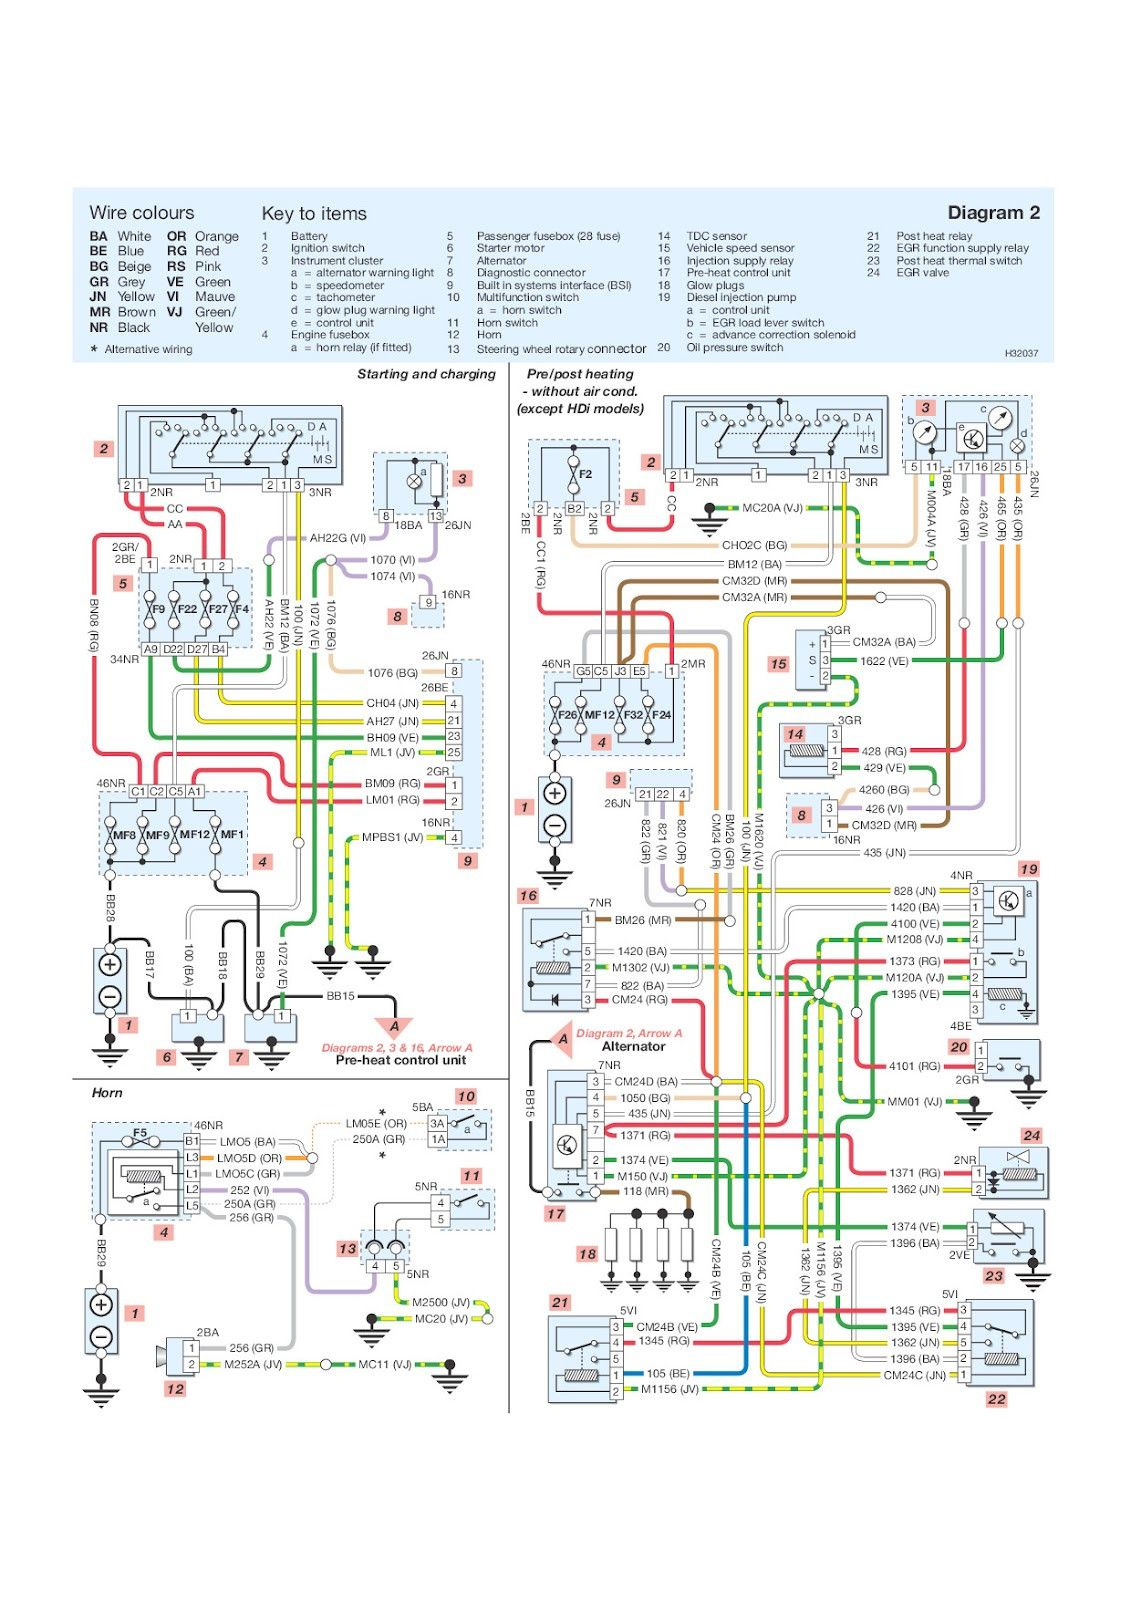 peugeot wiring diagram wiring diagramsyour wiring diagrams source peugeot 206 starting charging horn furnace wiring diagram peugeot wiring diagram